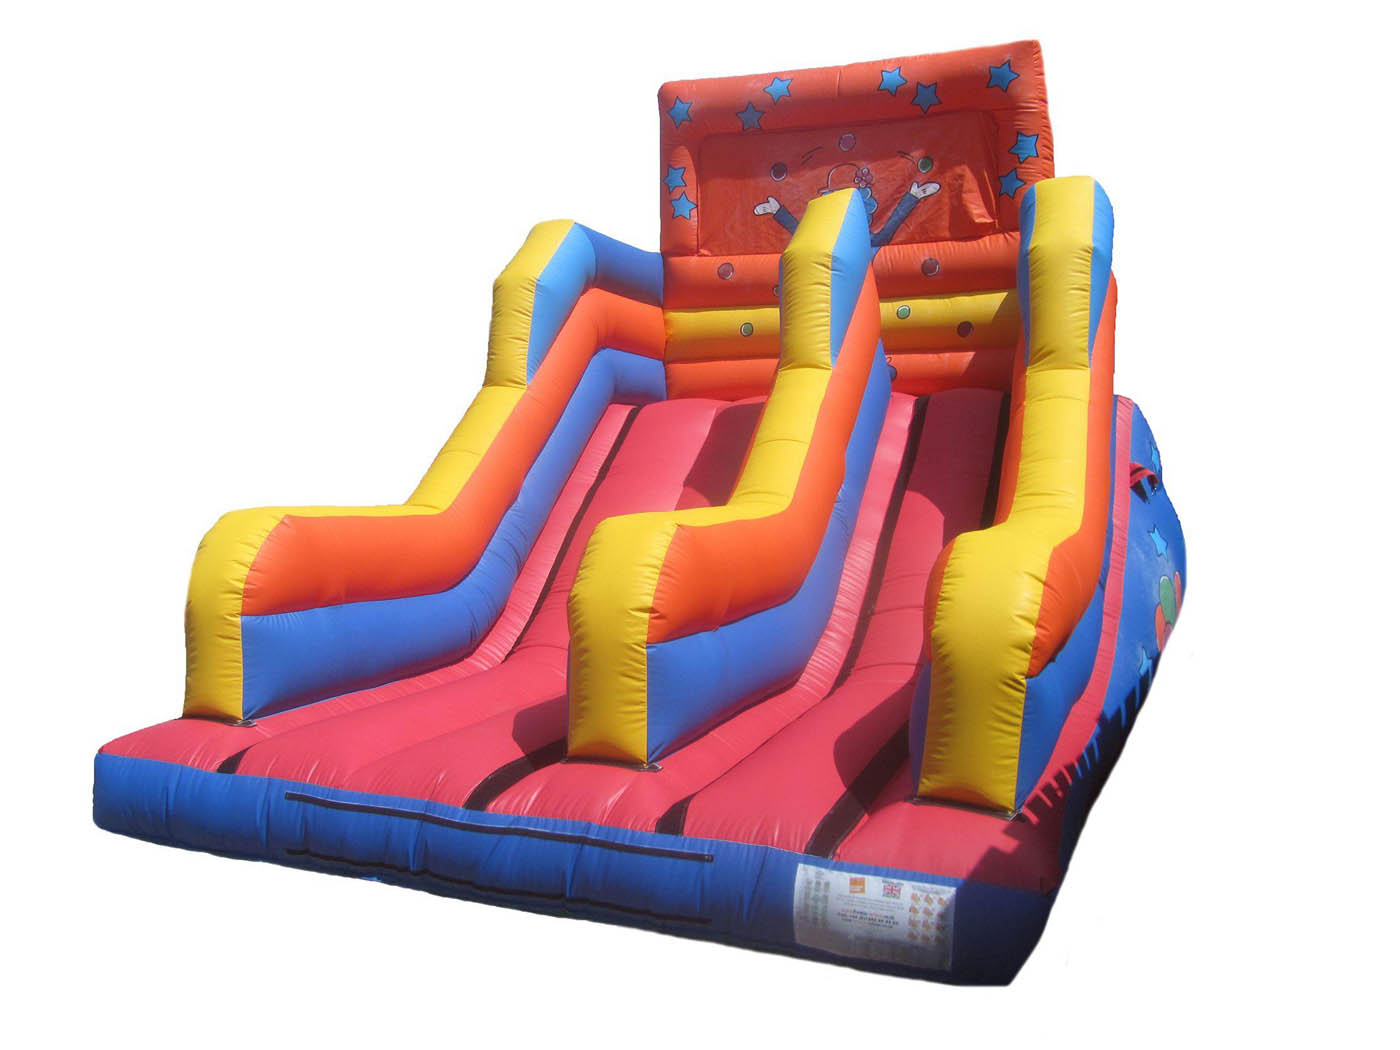 15ft-clown-inflatable-platform-slide-compressor